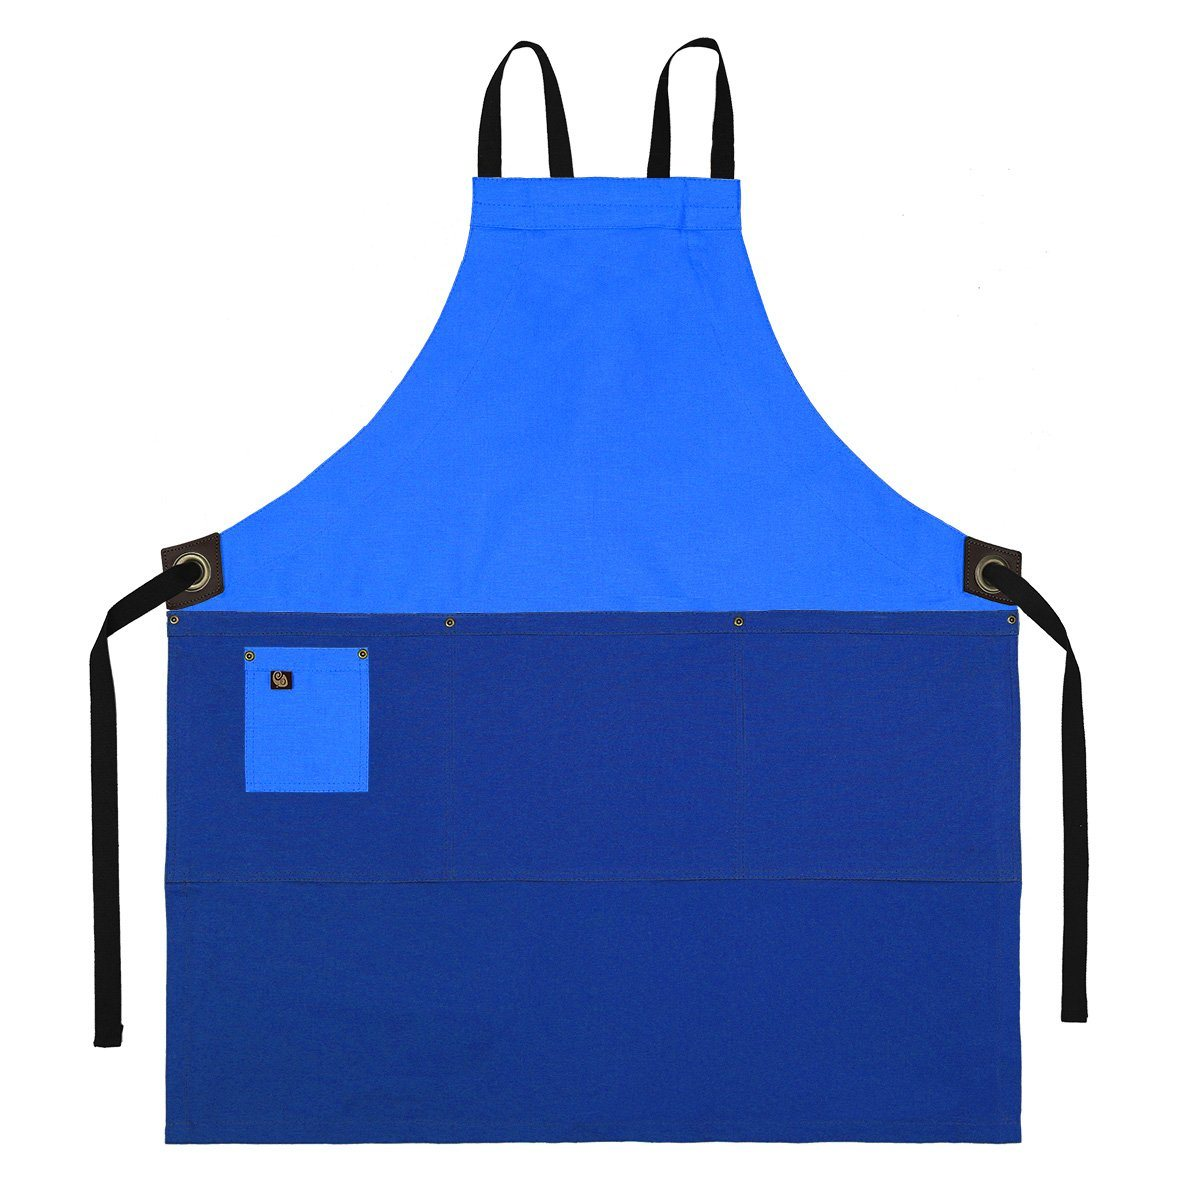 Koda Zelkova Full Bib Apron (Turquoise and Marine Blue)